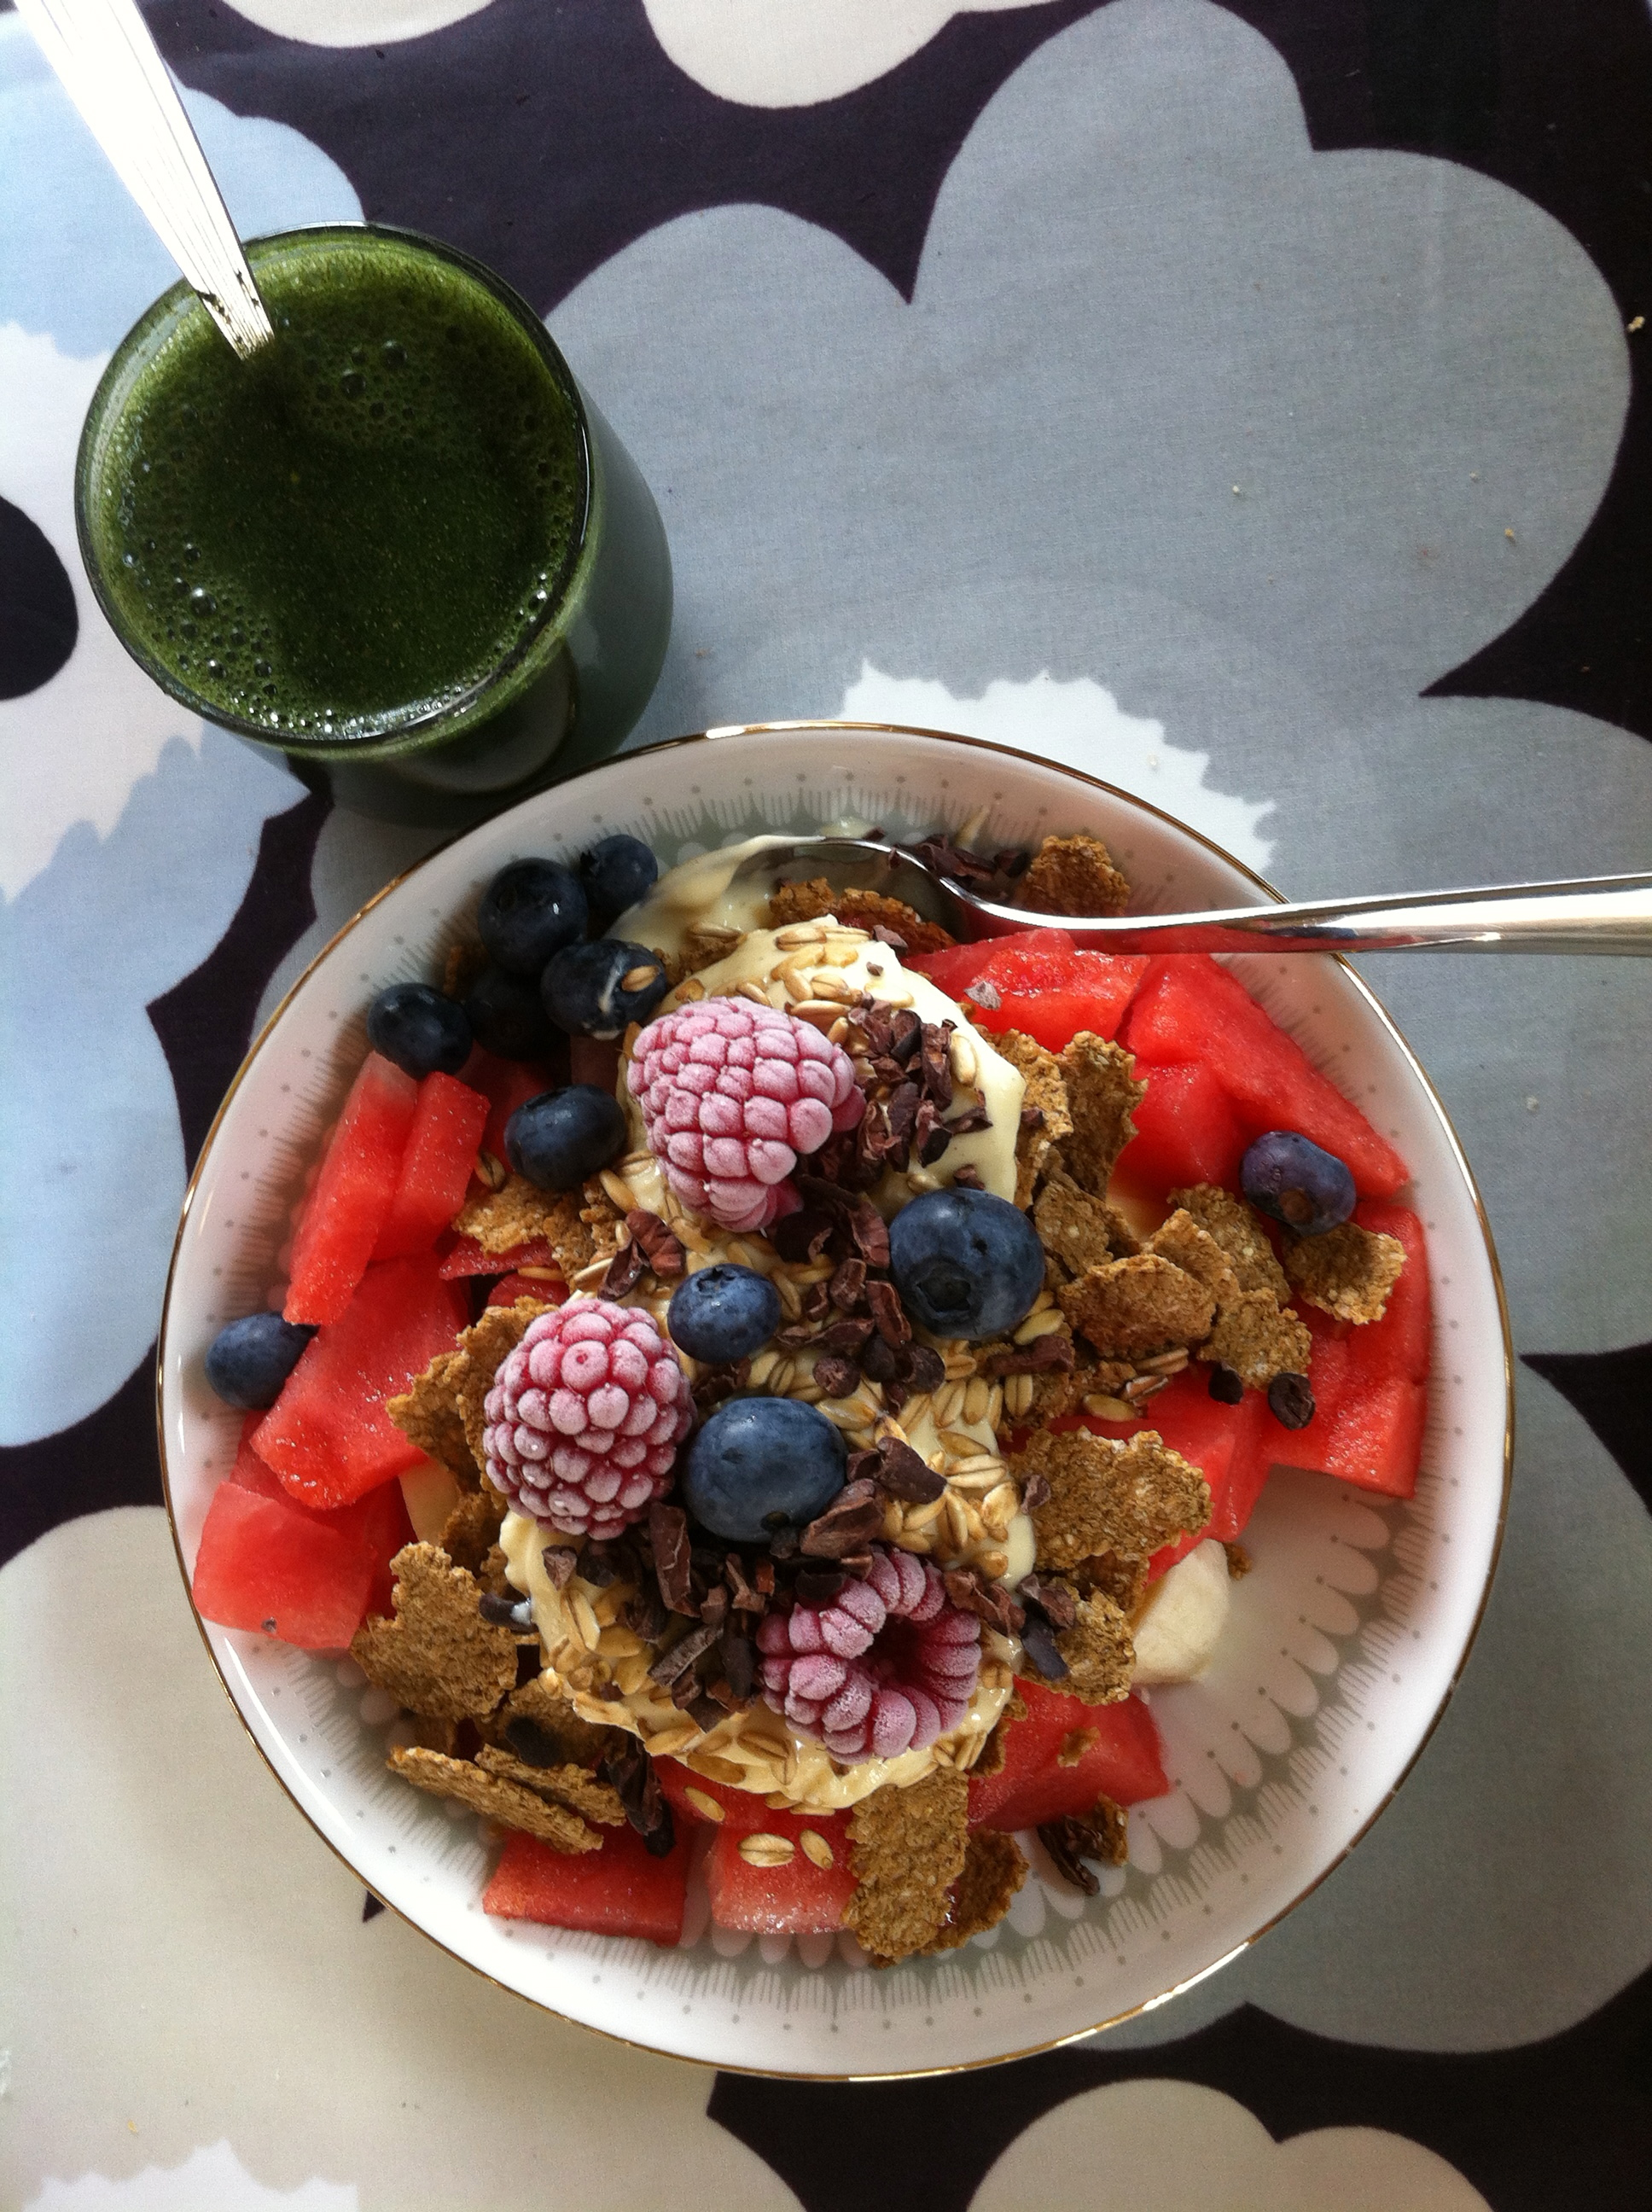 Sommerens favoritt antioxidant frokost